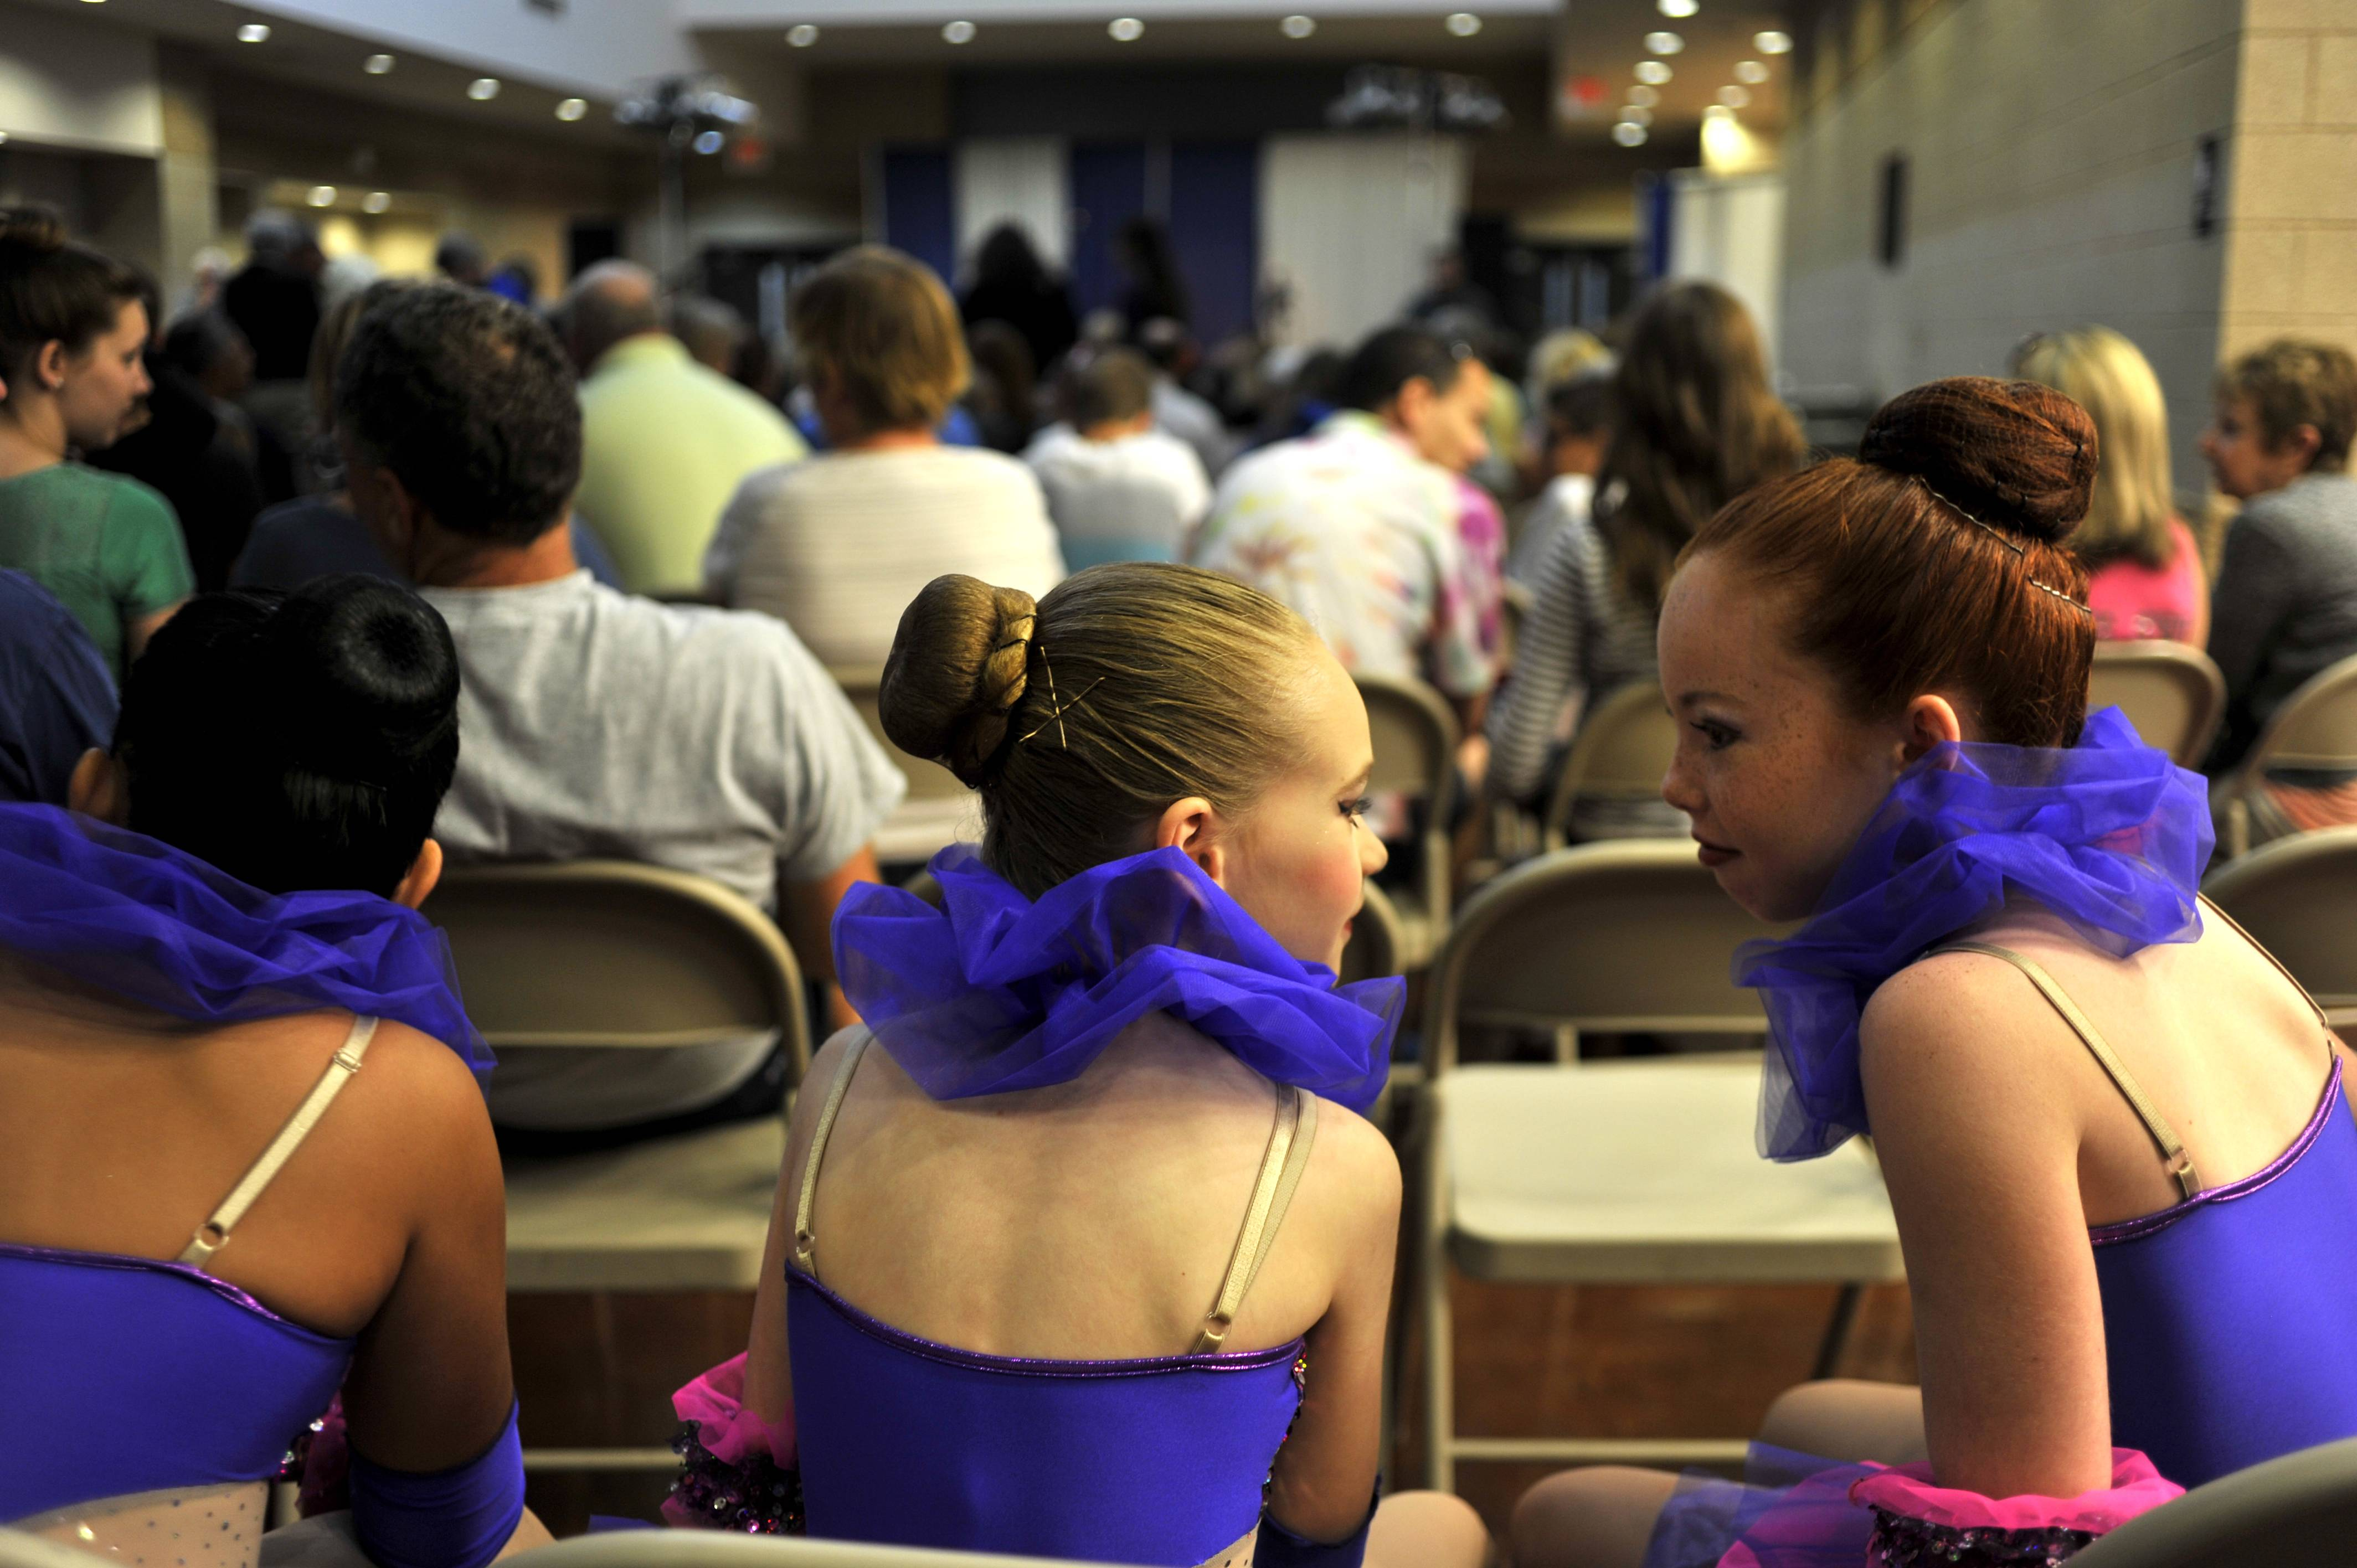 Mia Soderquist Hansen, 10, of St. Charles, center, and CJ Silverman, 9, of Geneva, share secrets before they and the other members of the Geneva Cosmic Girls dance at the Kane County Talent Show at Kane County Fairgrounds in St. Charles on Monday. The girls are all from St. Charles and Geneva and danced jazz at the competition.